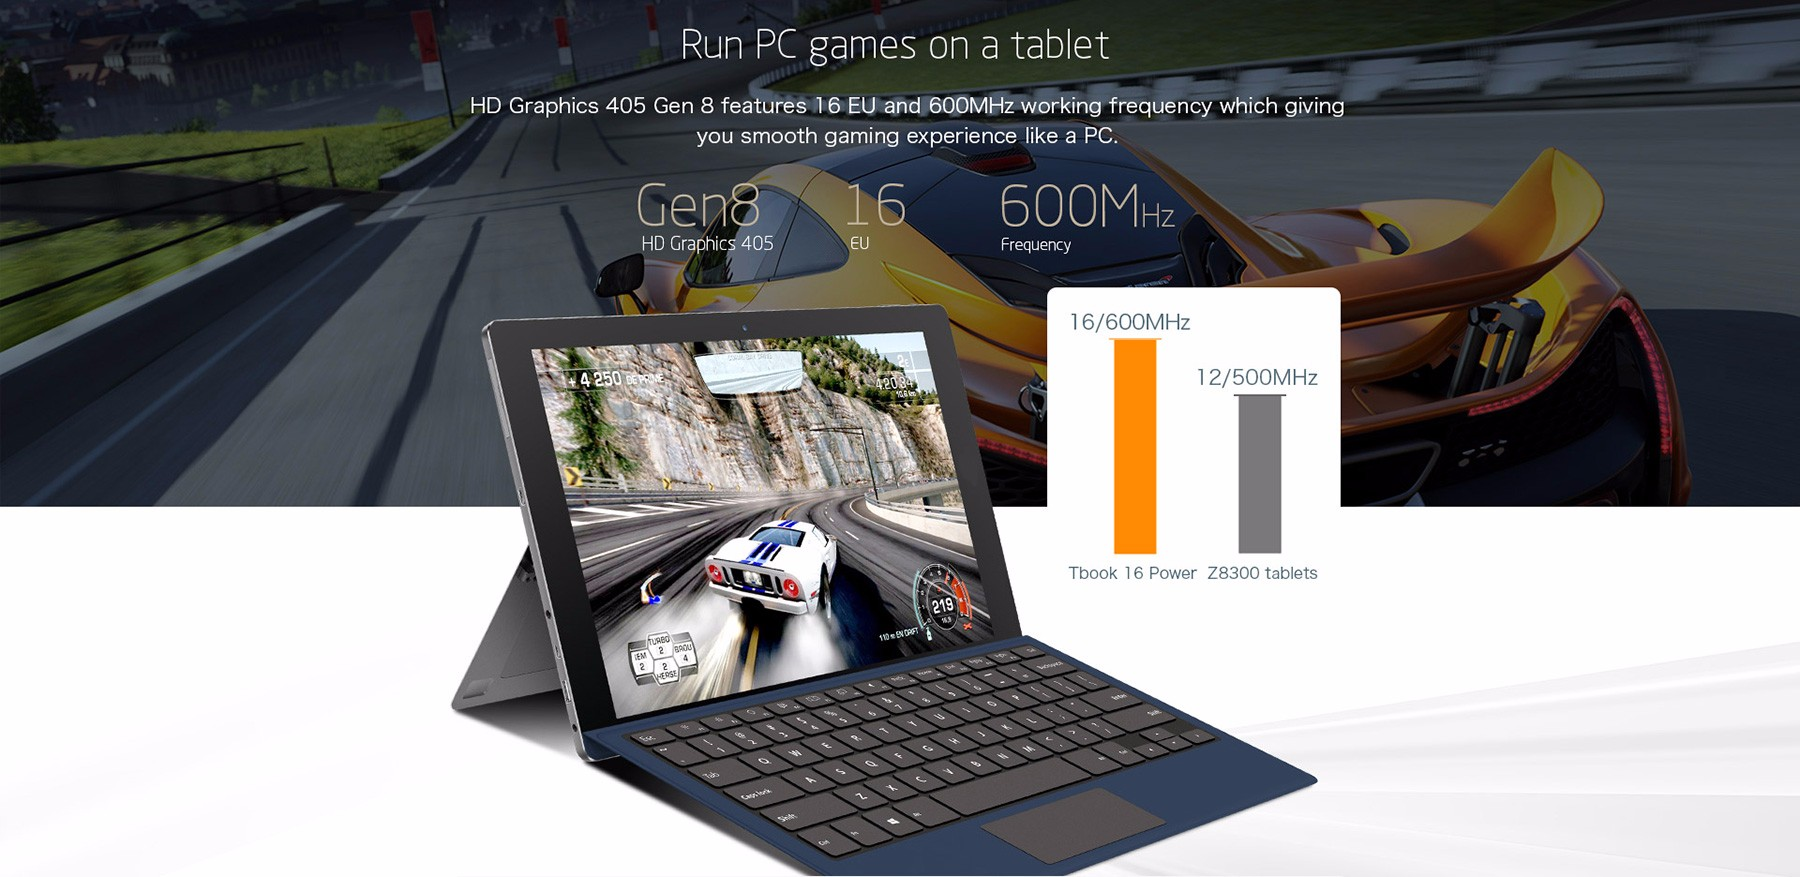 Teclast réper 16 Alimentation Tablet PC de Windows 10 + Android 6.0 11.6 pouces écran IPS Intel Atom x7-Z8750 64bit Quad Core 1.6GHz 8GB RAM 64GB ROM Caméras OTG